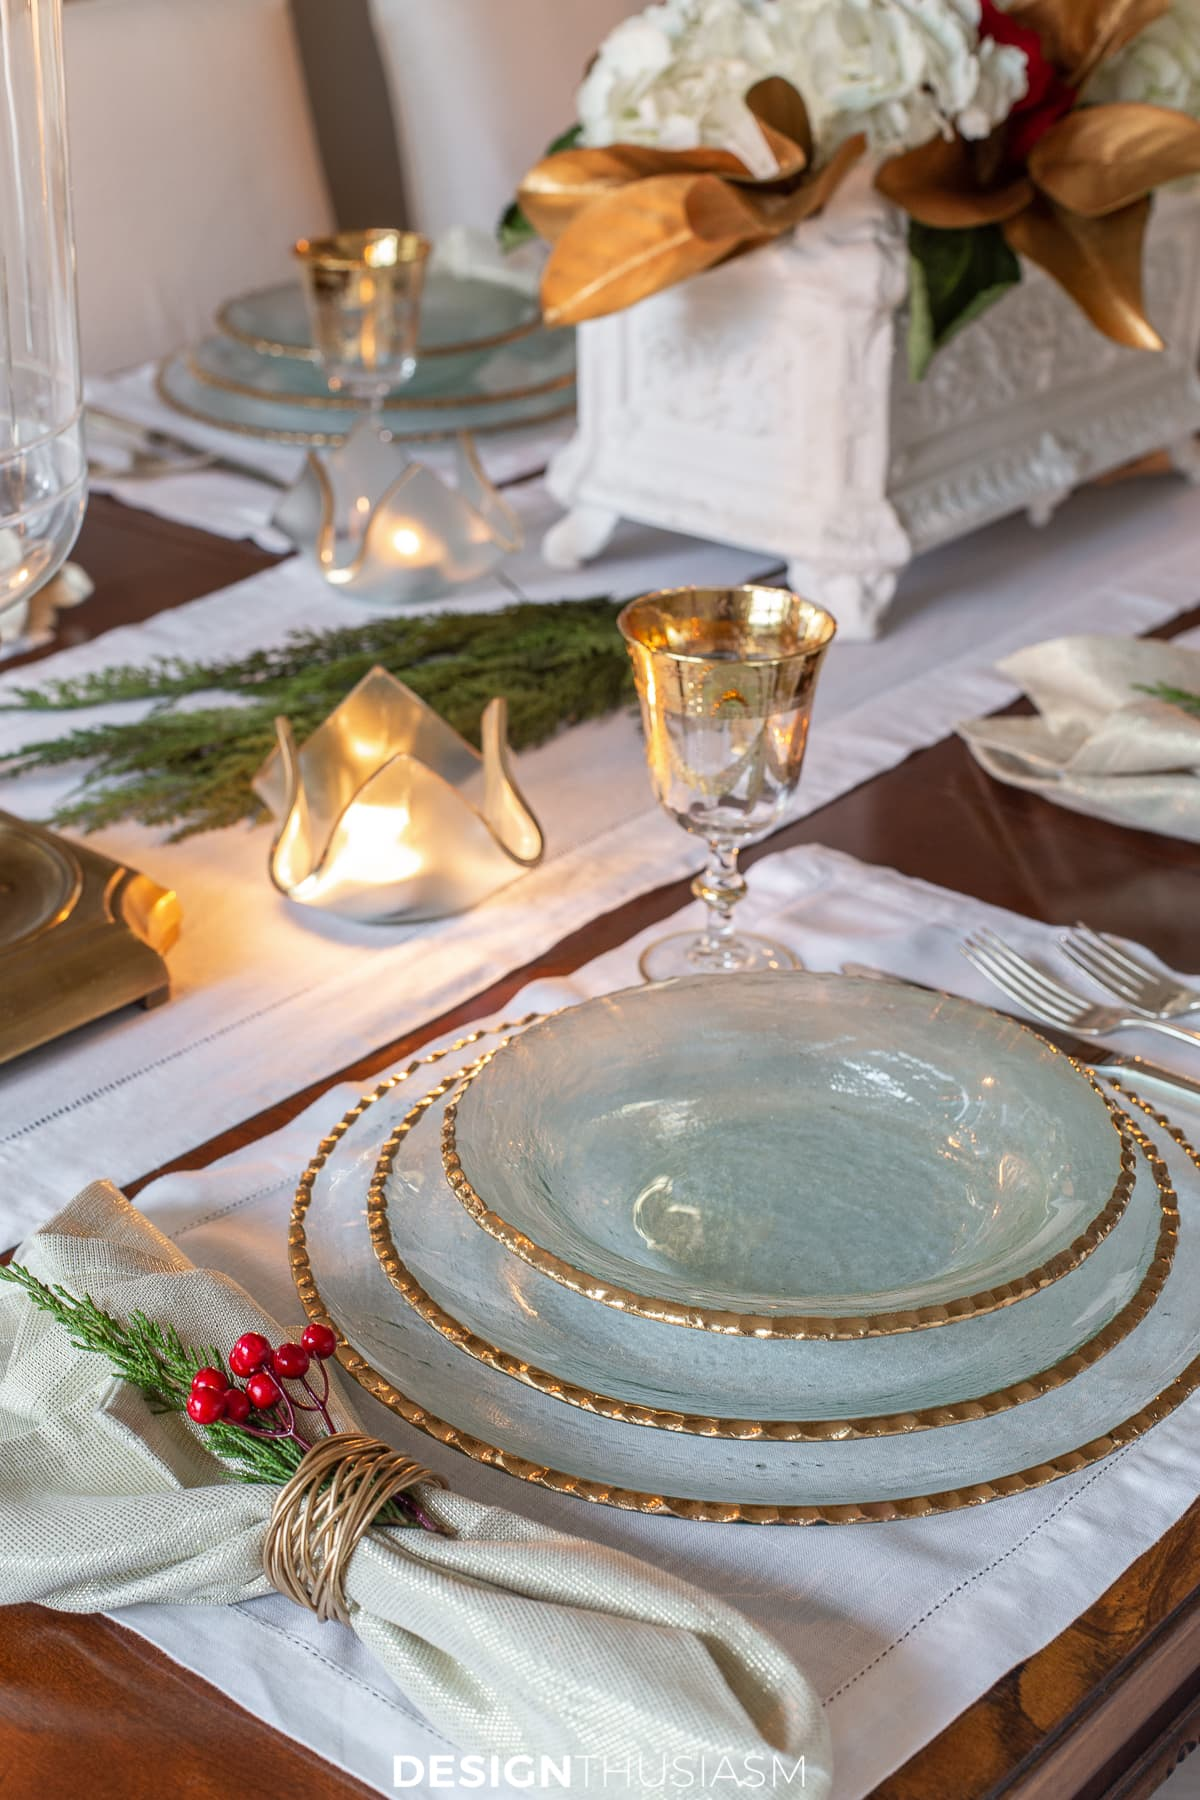 Edgey tablesetting, holiday decor, votives with candles